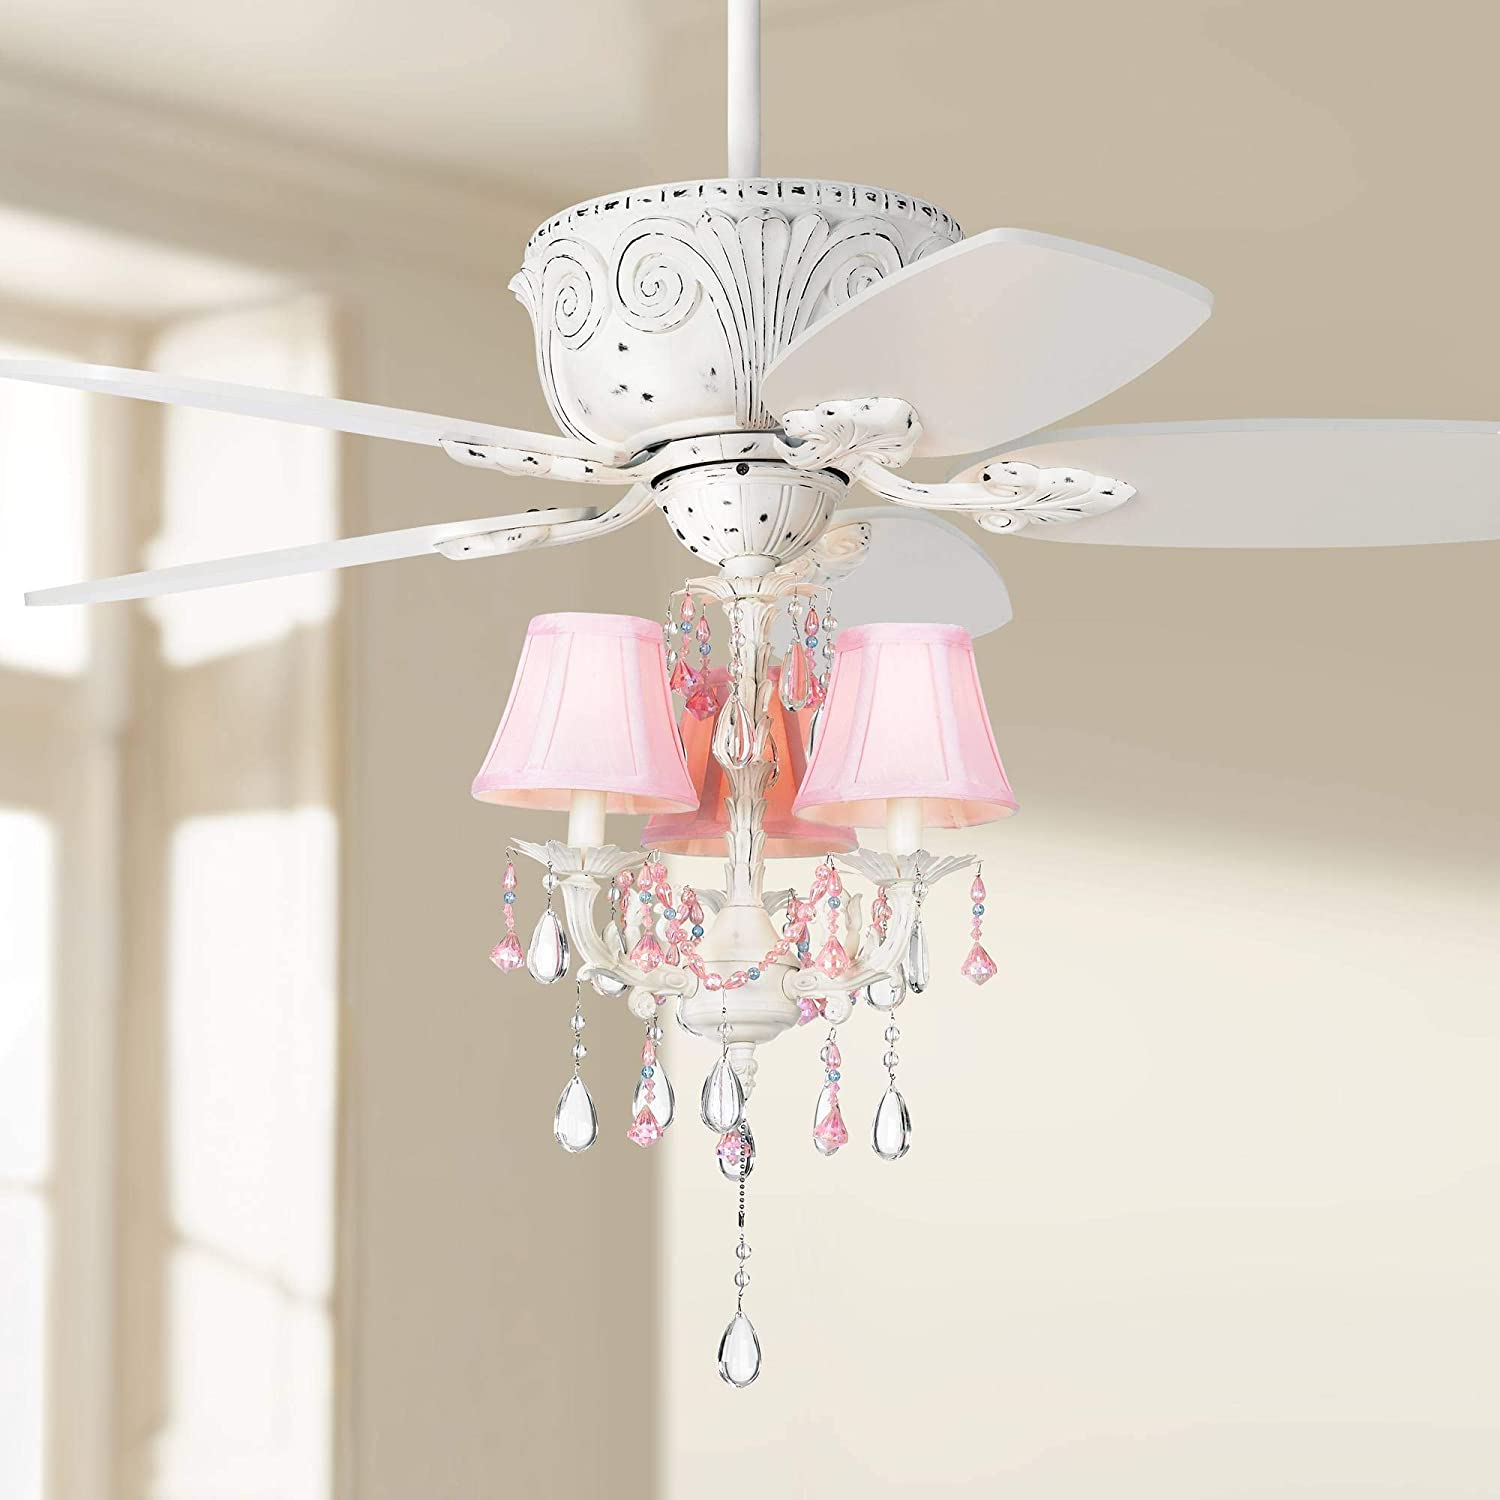 44 Casa Deville Country Vintage Chic Ceiling Fan With Light Led Crystal Chandelier Pink Shades Rubbed White For House Bedroom Living Room Home Kitchen Family Dining Office Casa Vieja Amazon Com